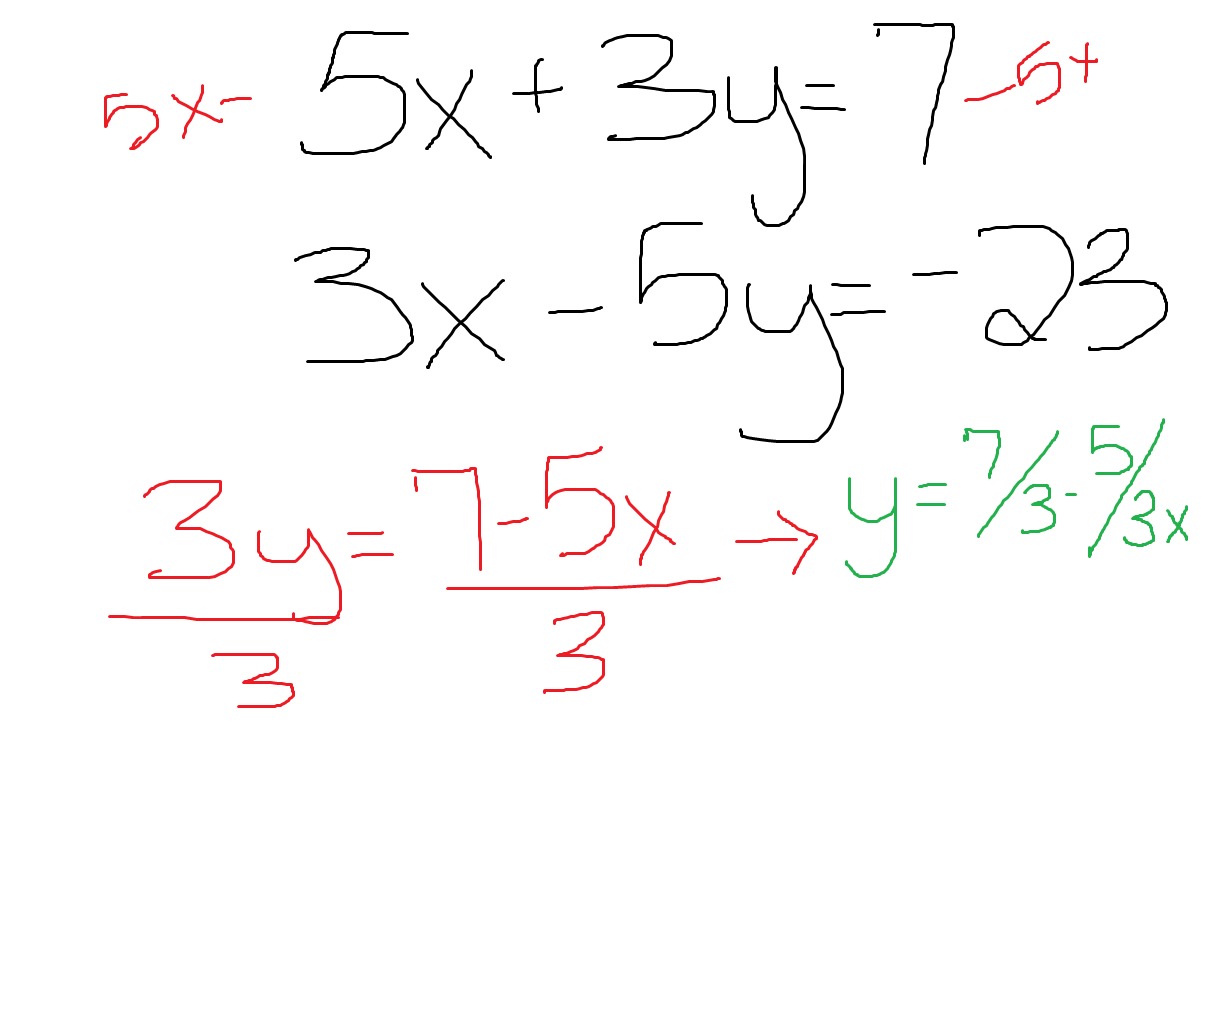 Solving Systems Of Equations Substitution Statefairride1